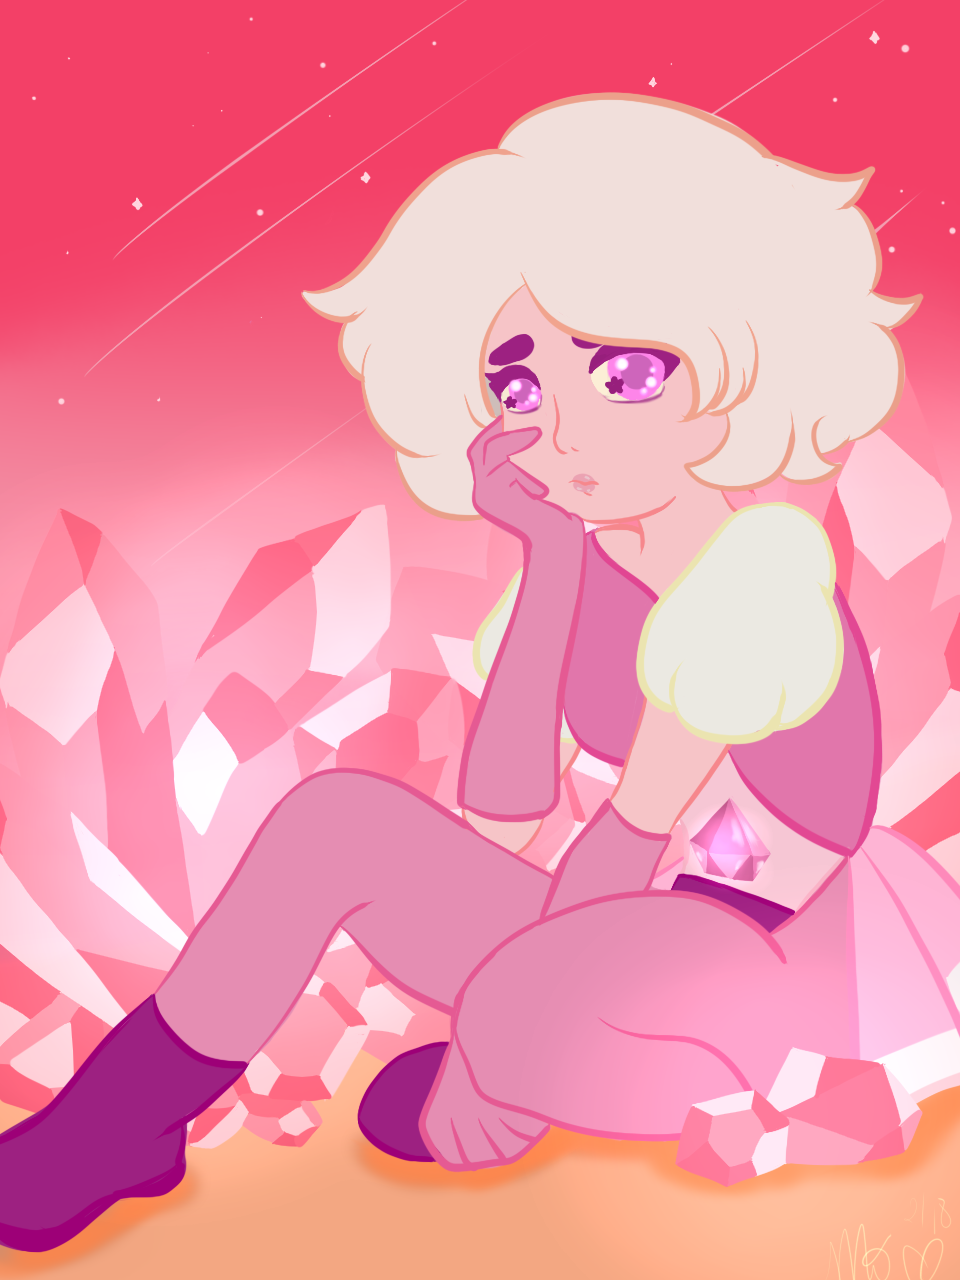 My derp drawing of Pink Diamond. Check out my speedpaint for some calming piano tunes and my overall process. https://www.youtube.com/watch?v=wshpDCBDNN8